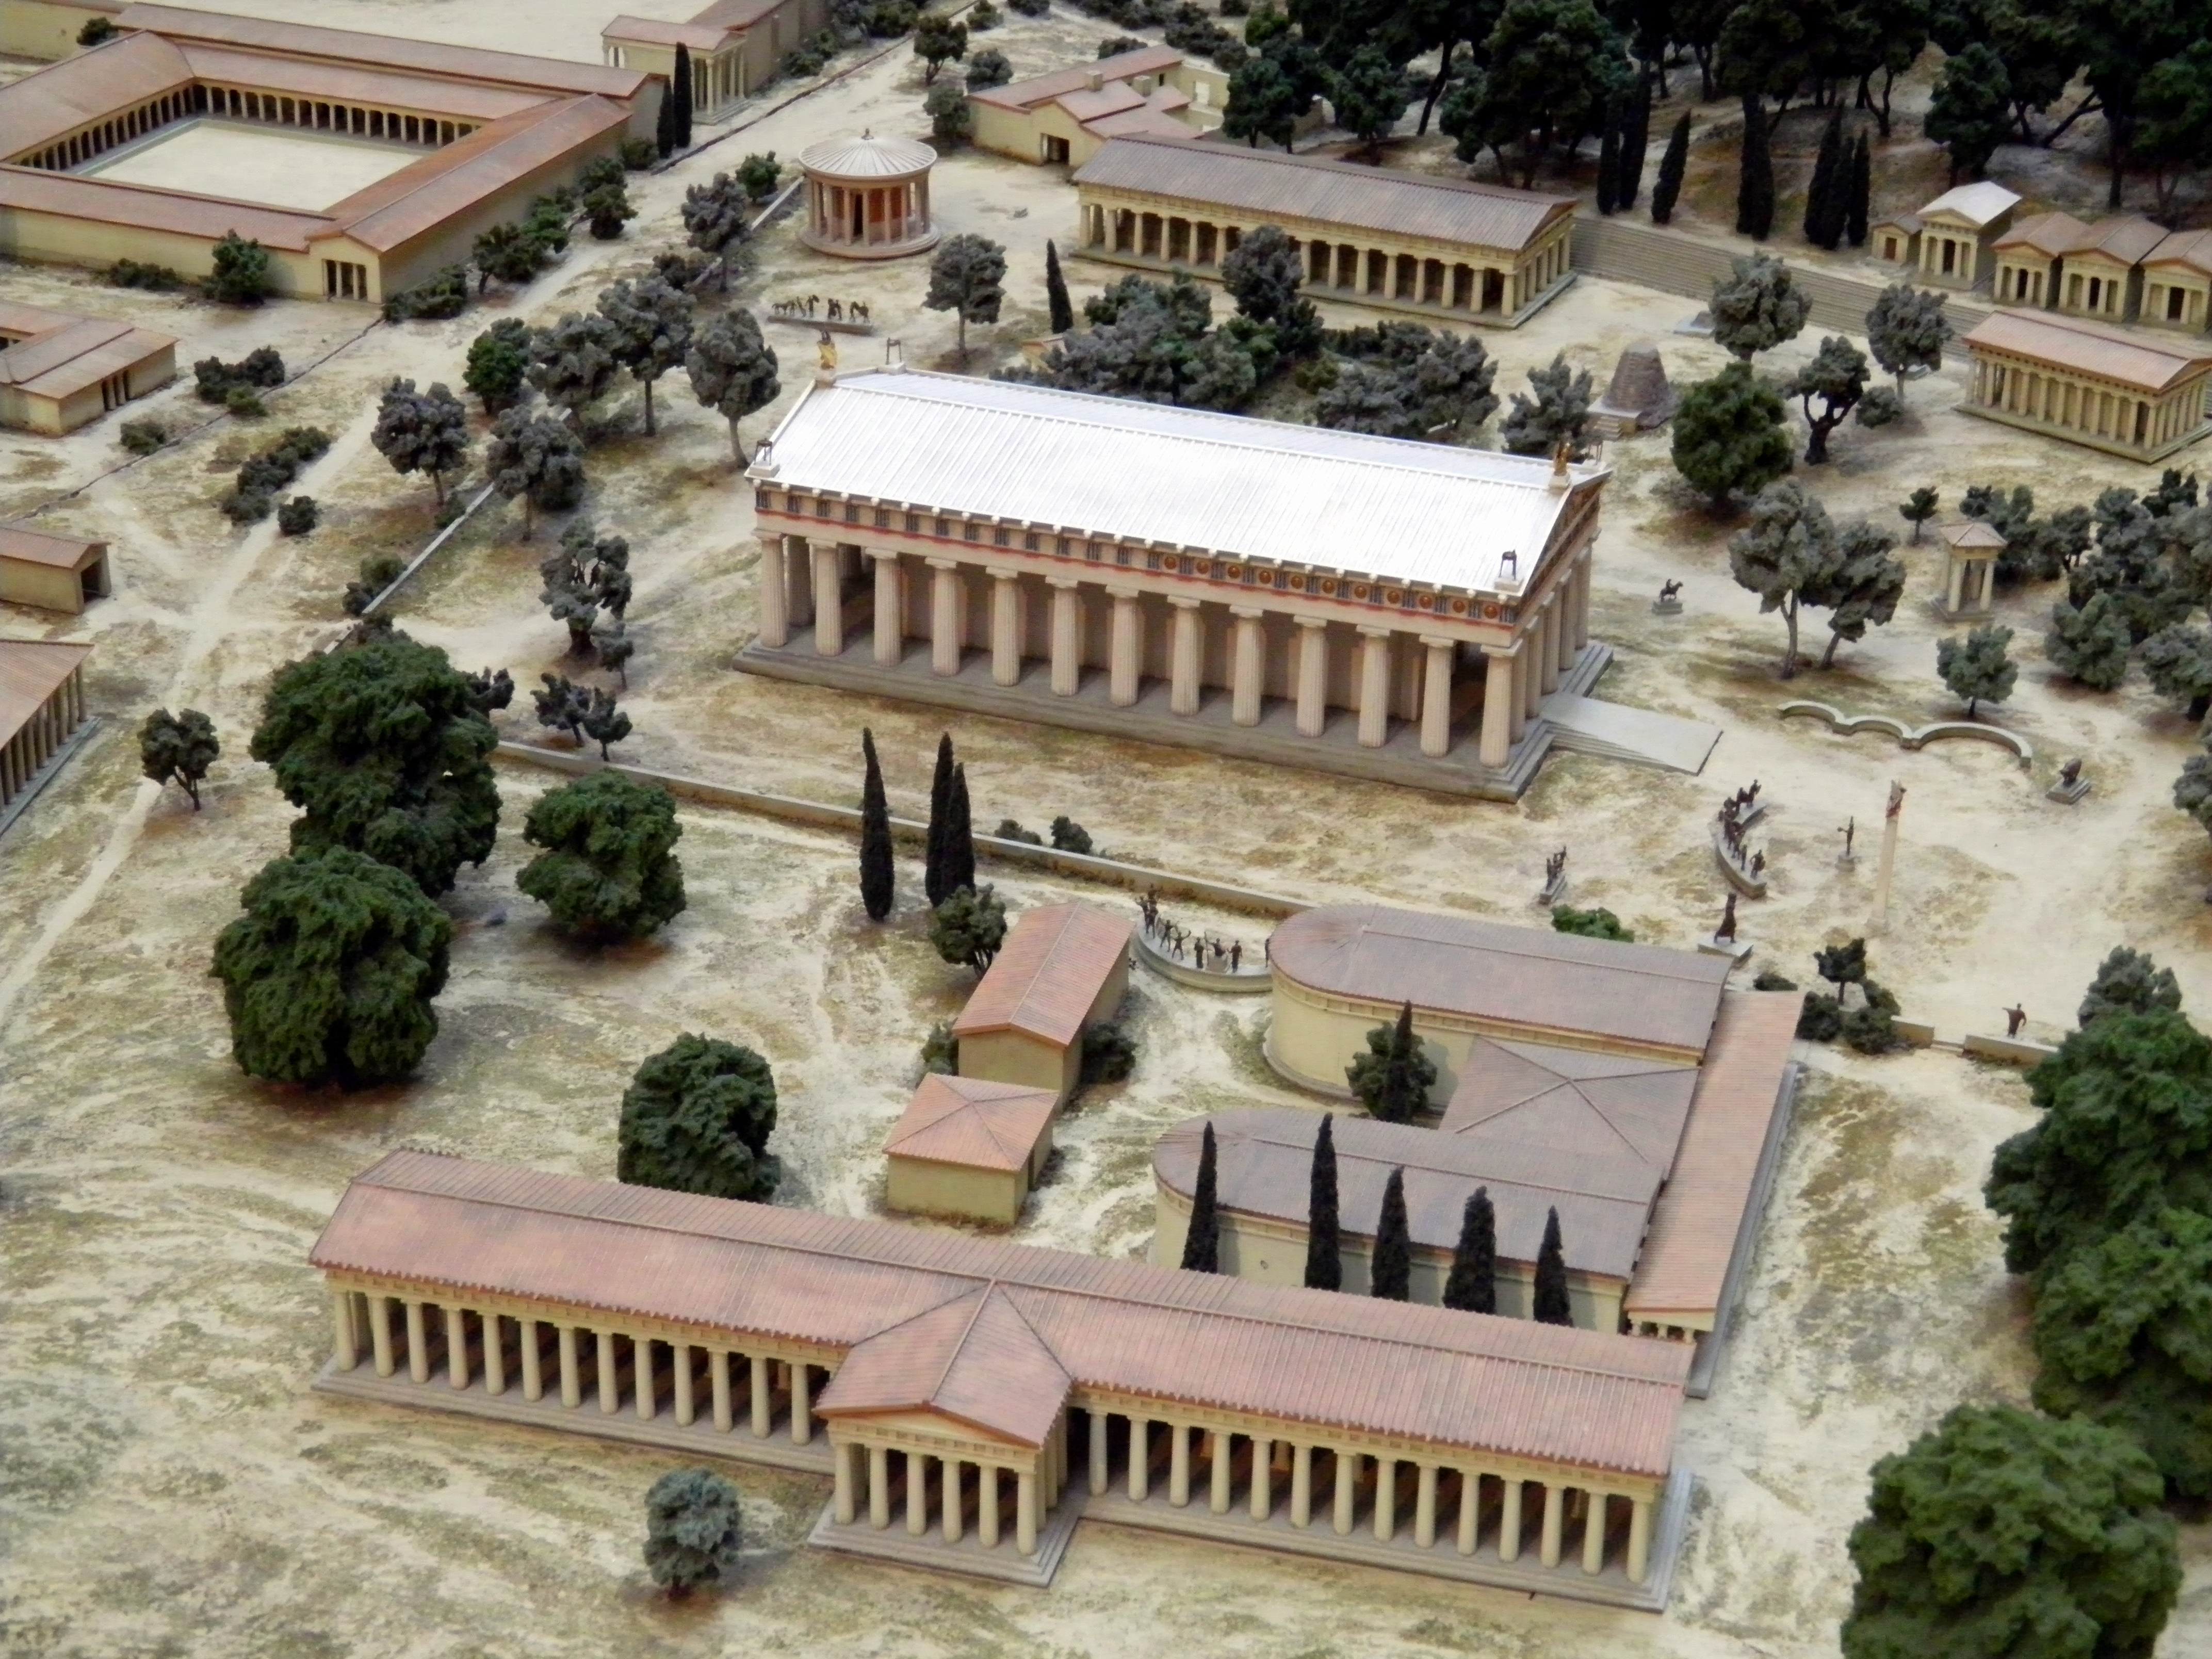 File:Model of ancient Olympia, British Museum6.jpg ...